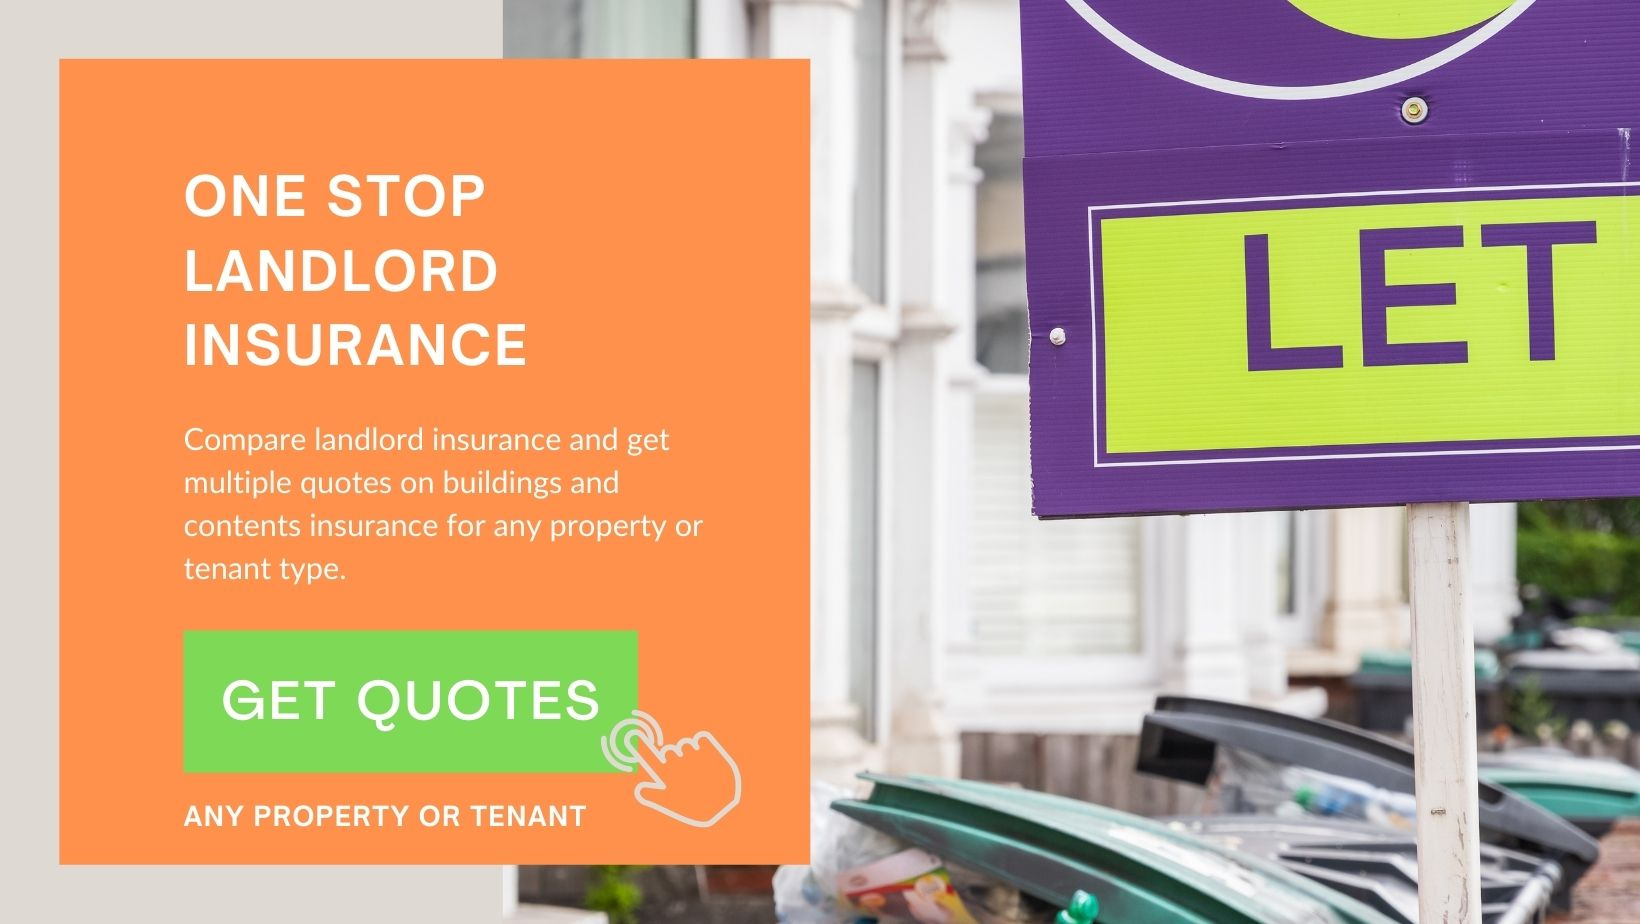 Start your landlord insurance quote - click here.